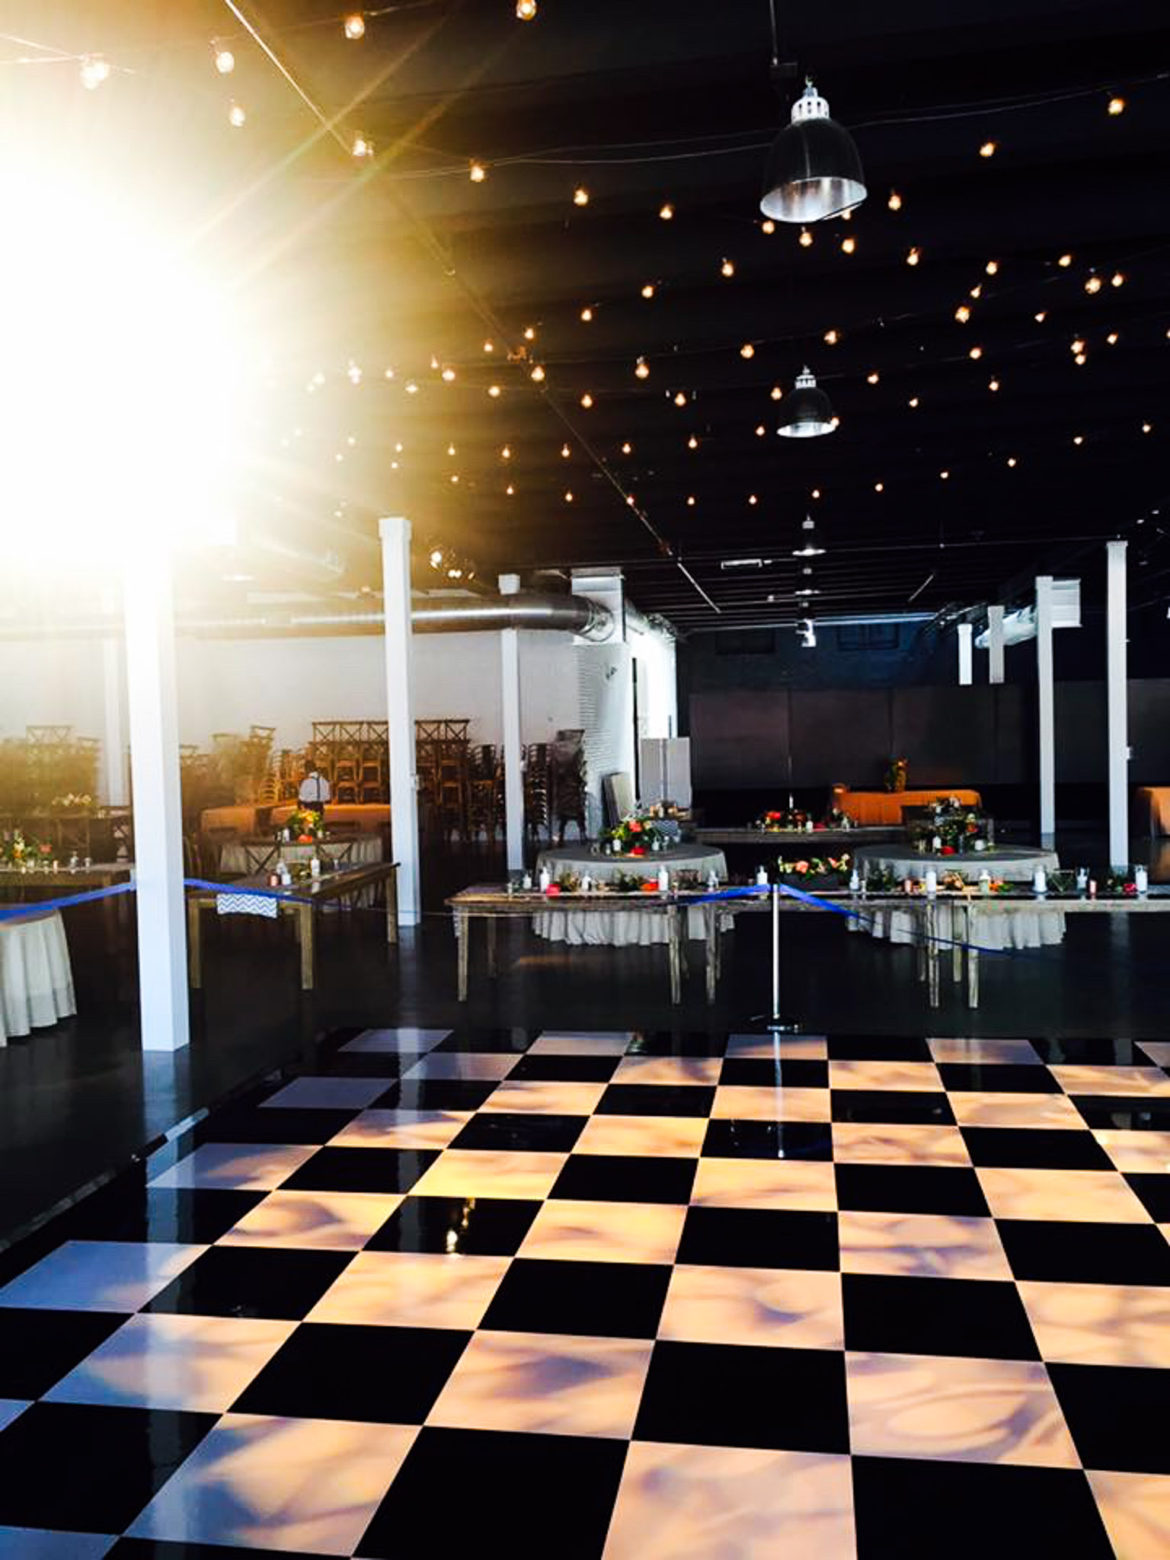 Elegant_Event_Lighting_Chicago_Revel_Fulton_Market_Wedding_Black_White_Checkerd_Floor